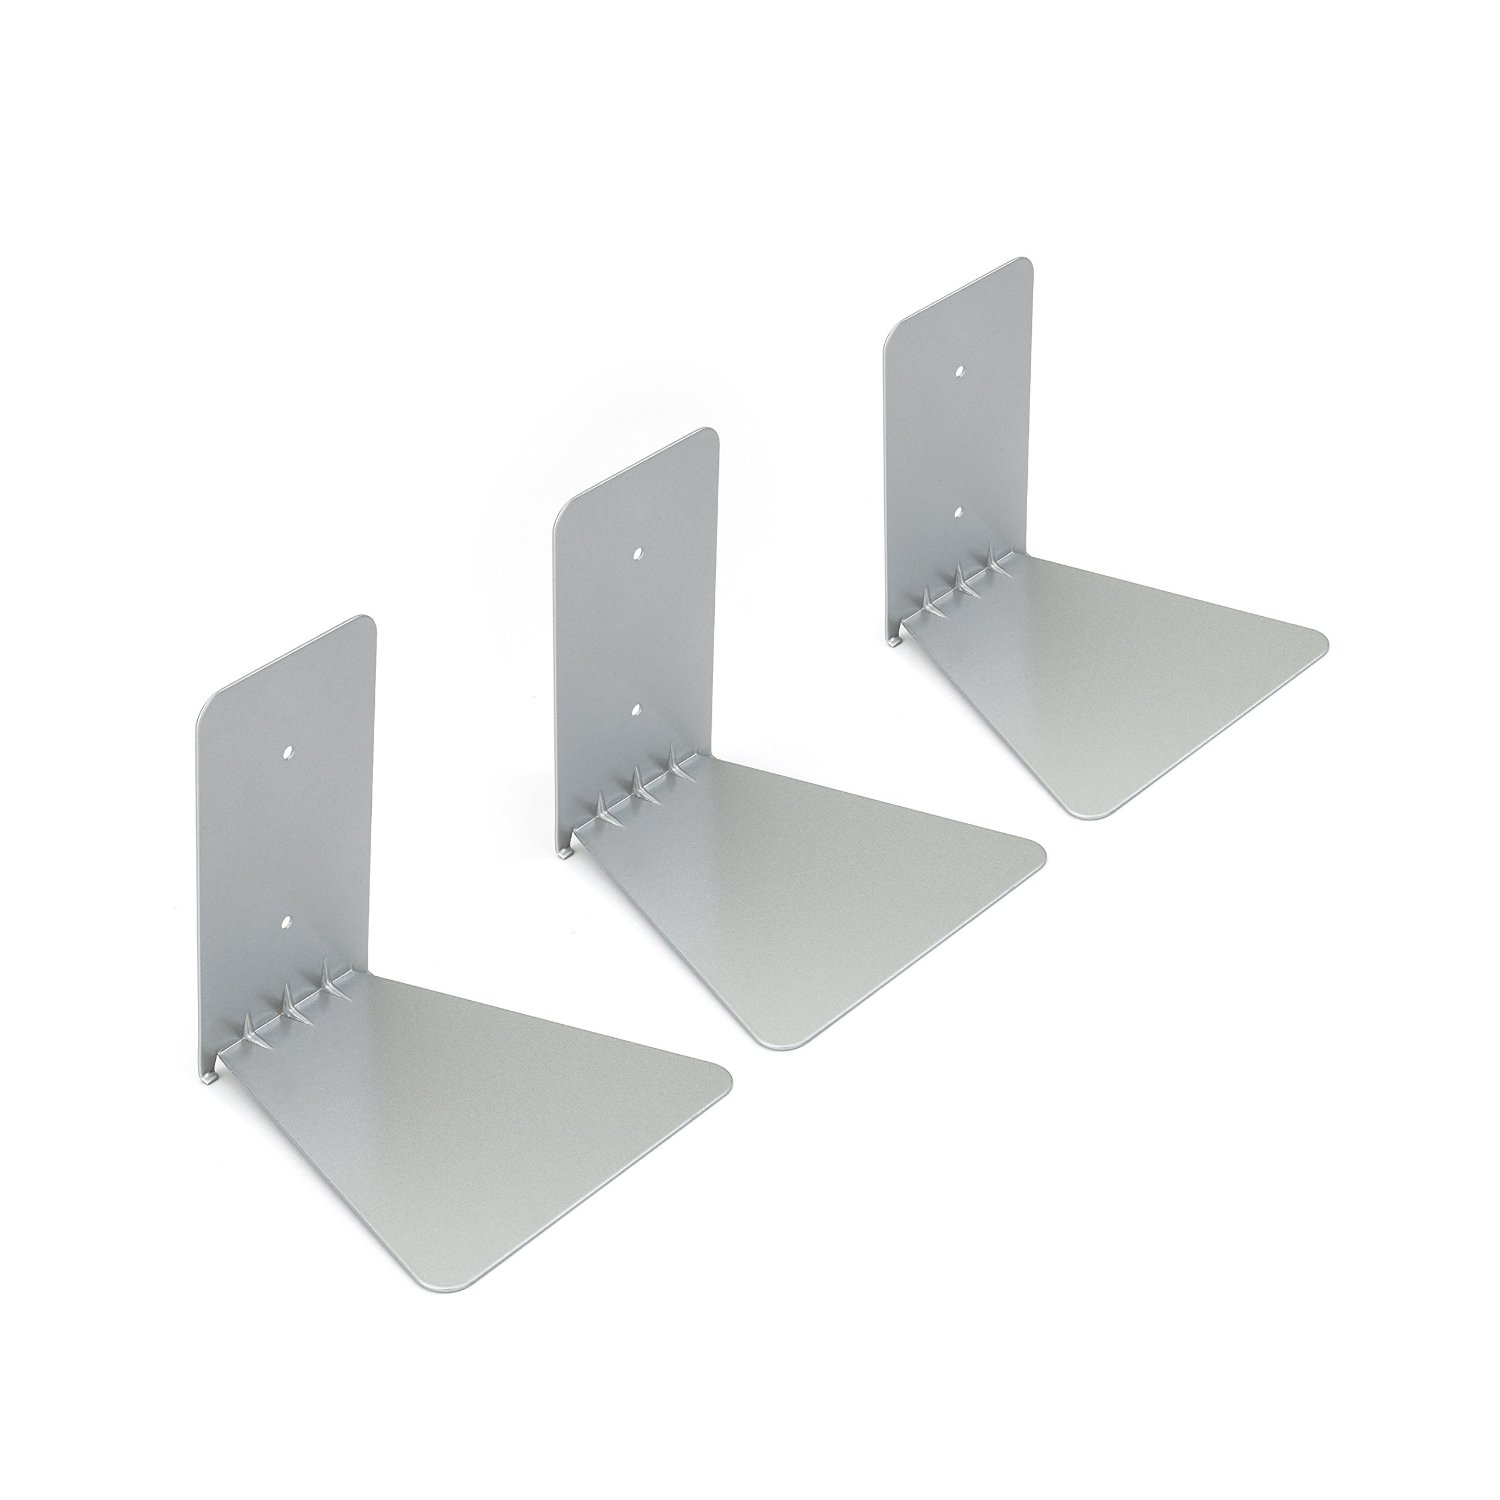 set of 3 invisible bookshelves